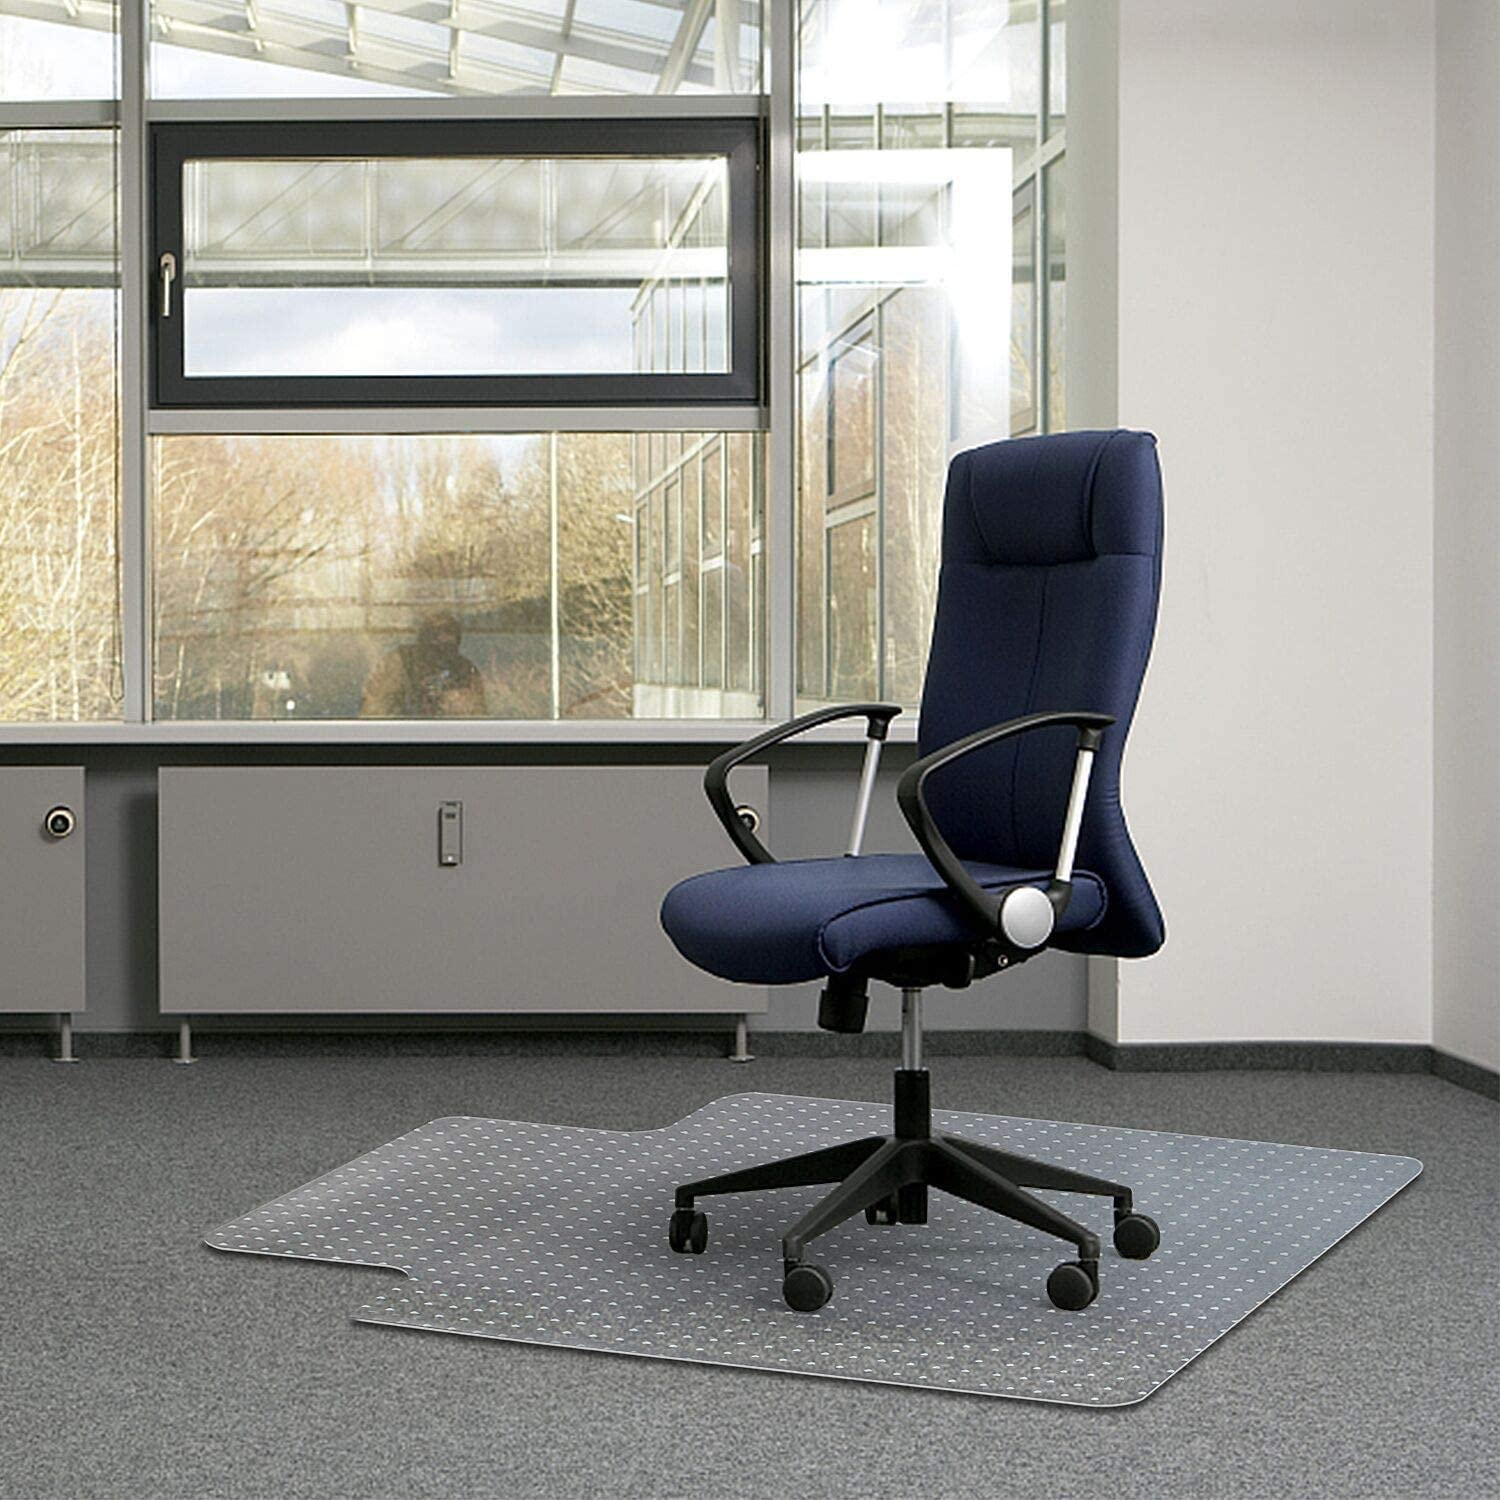 """Kuyal Office Chair Mat for Carpets, Transparent Thick and Sturdy Highly Premium Quality Floor Mats for Low, Standard and No Pile Carpeted Floors, with Studs (30"""" X 48"""" with Lip) : Office Products"""